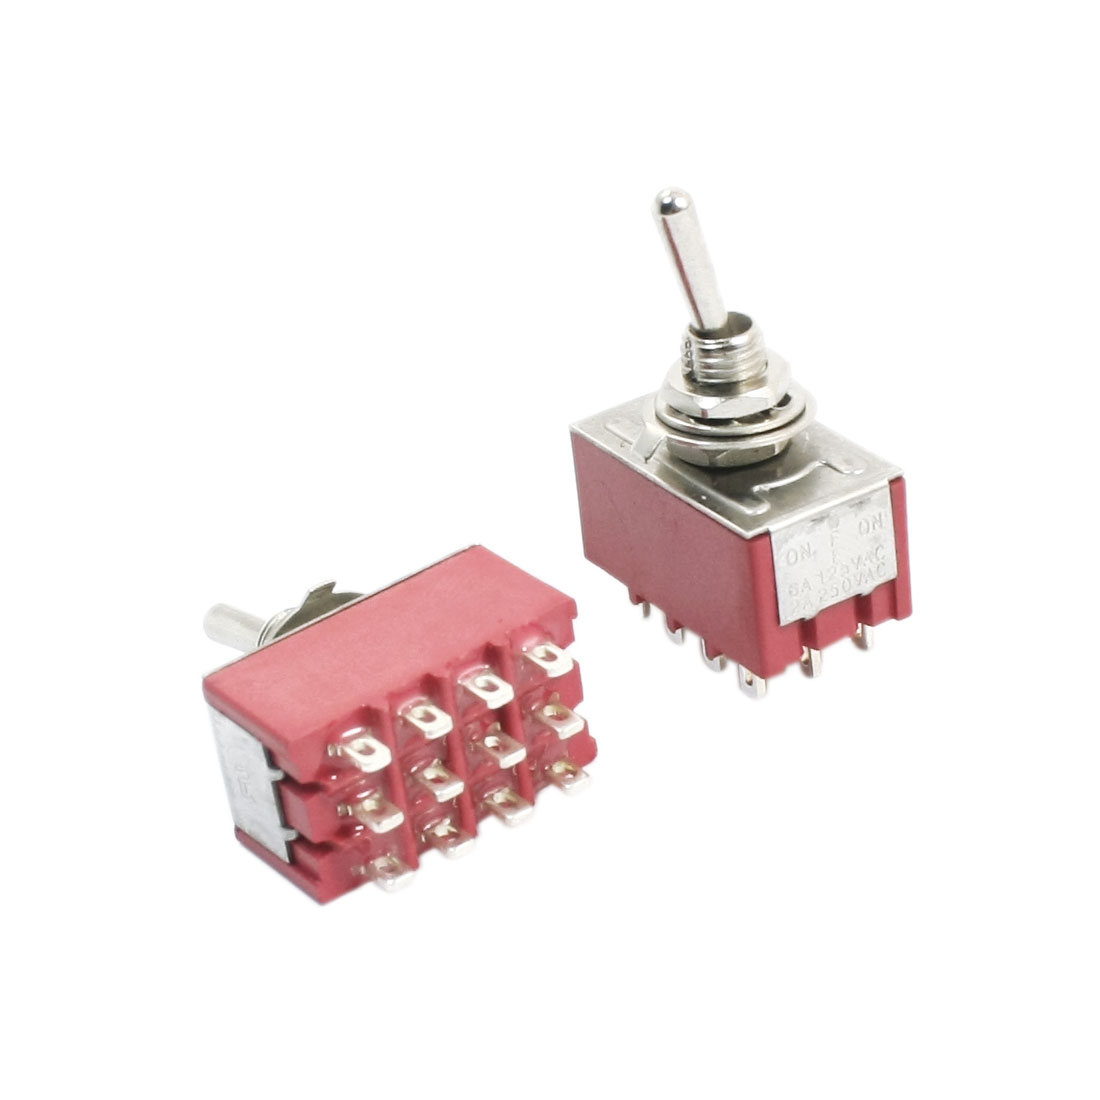 AC 125V 6A 4PDT ON/OFF/ON 3 Positions 12 Terminals Electric Toggle Switch Red 2pcs